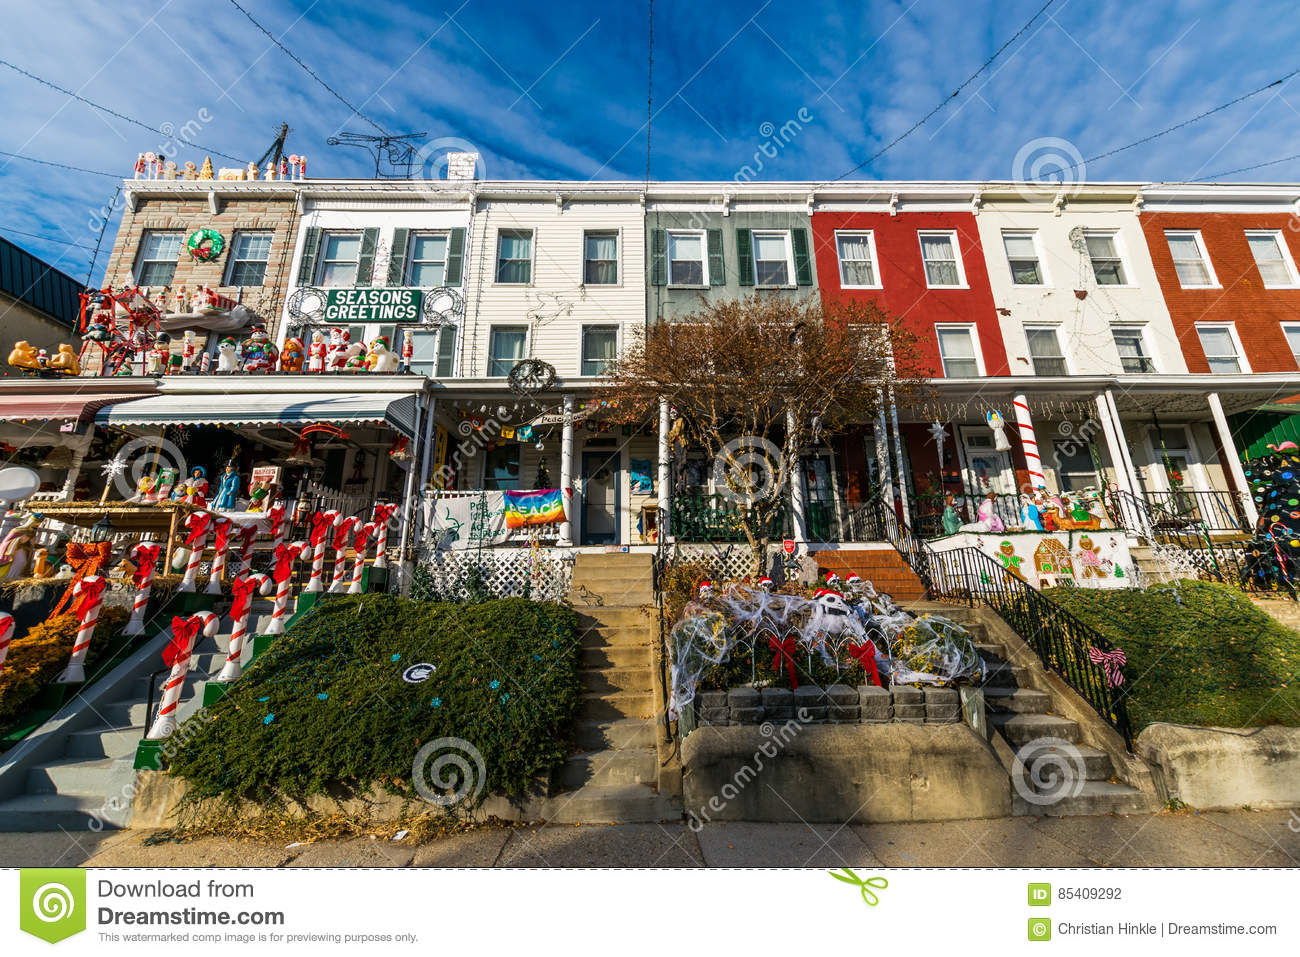 Baltimore Christmas 2021 Holiday Lights And Decoration In Hampden Baltimore Maryland Stock Photo Image Of Harbor America 85409292